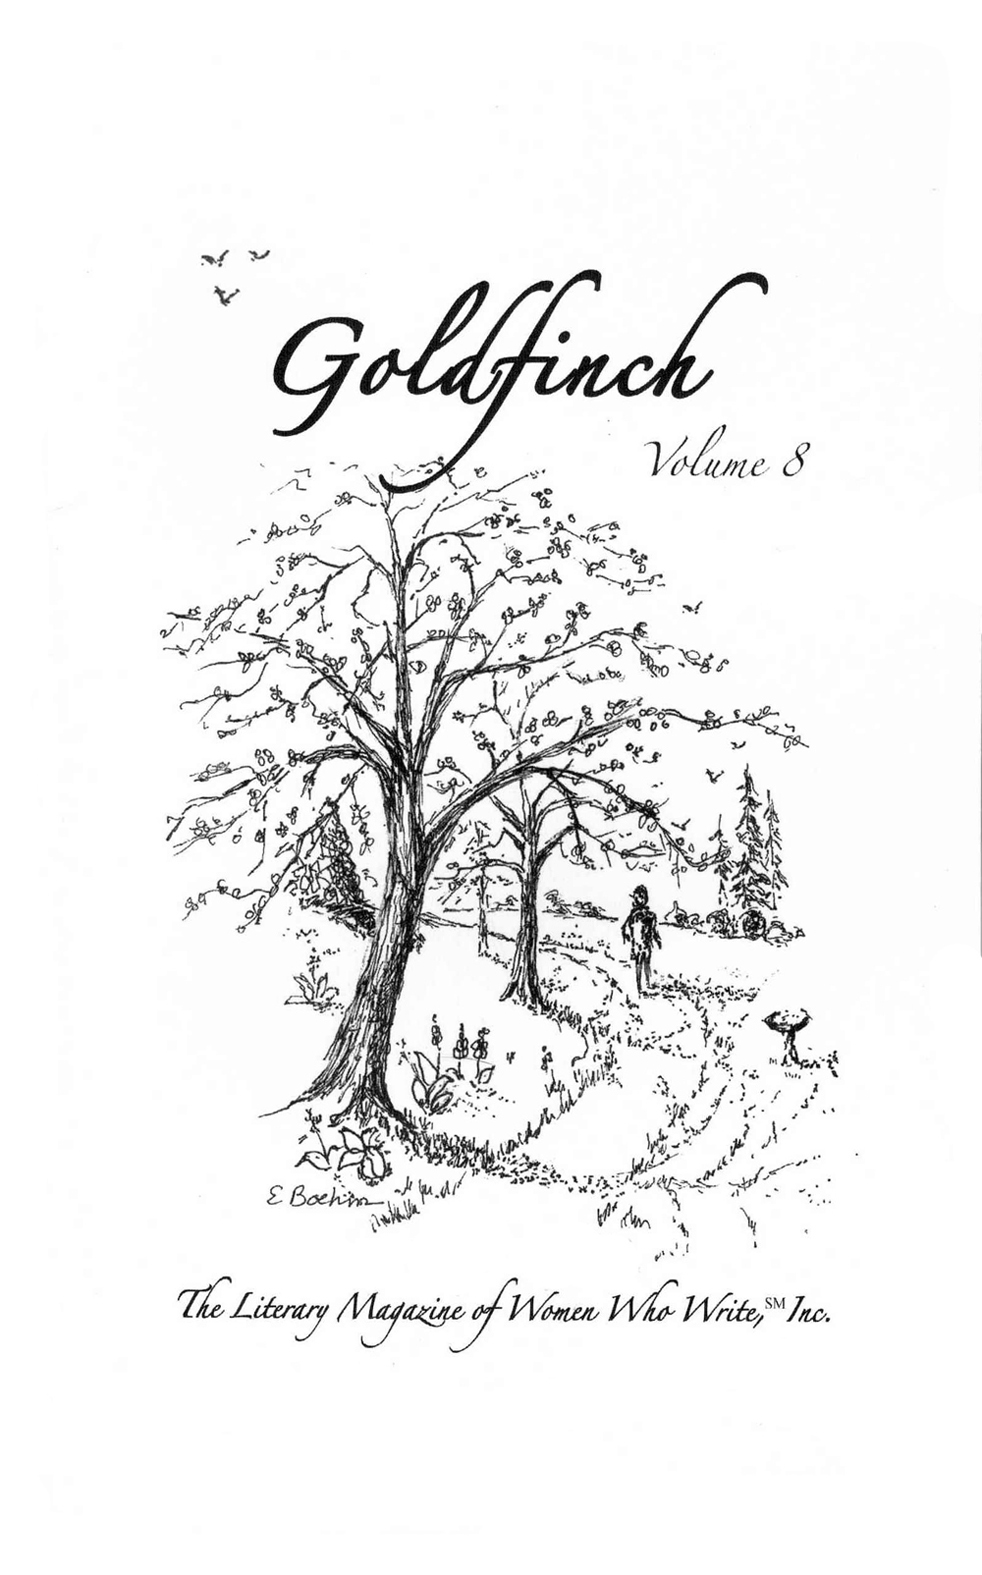 Goldfinch, Vol. 8, 2005